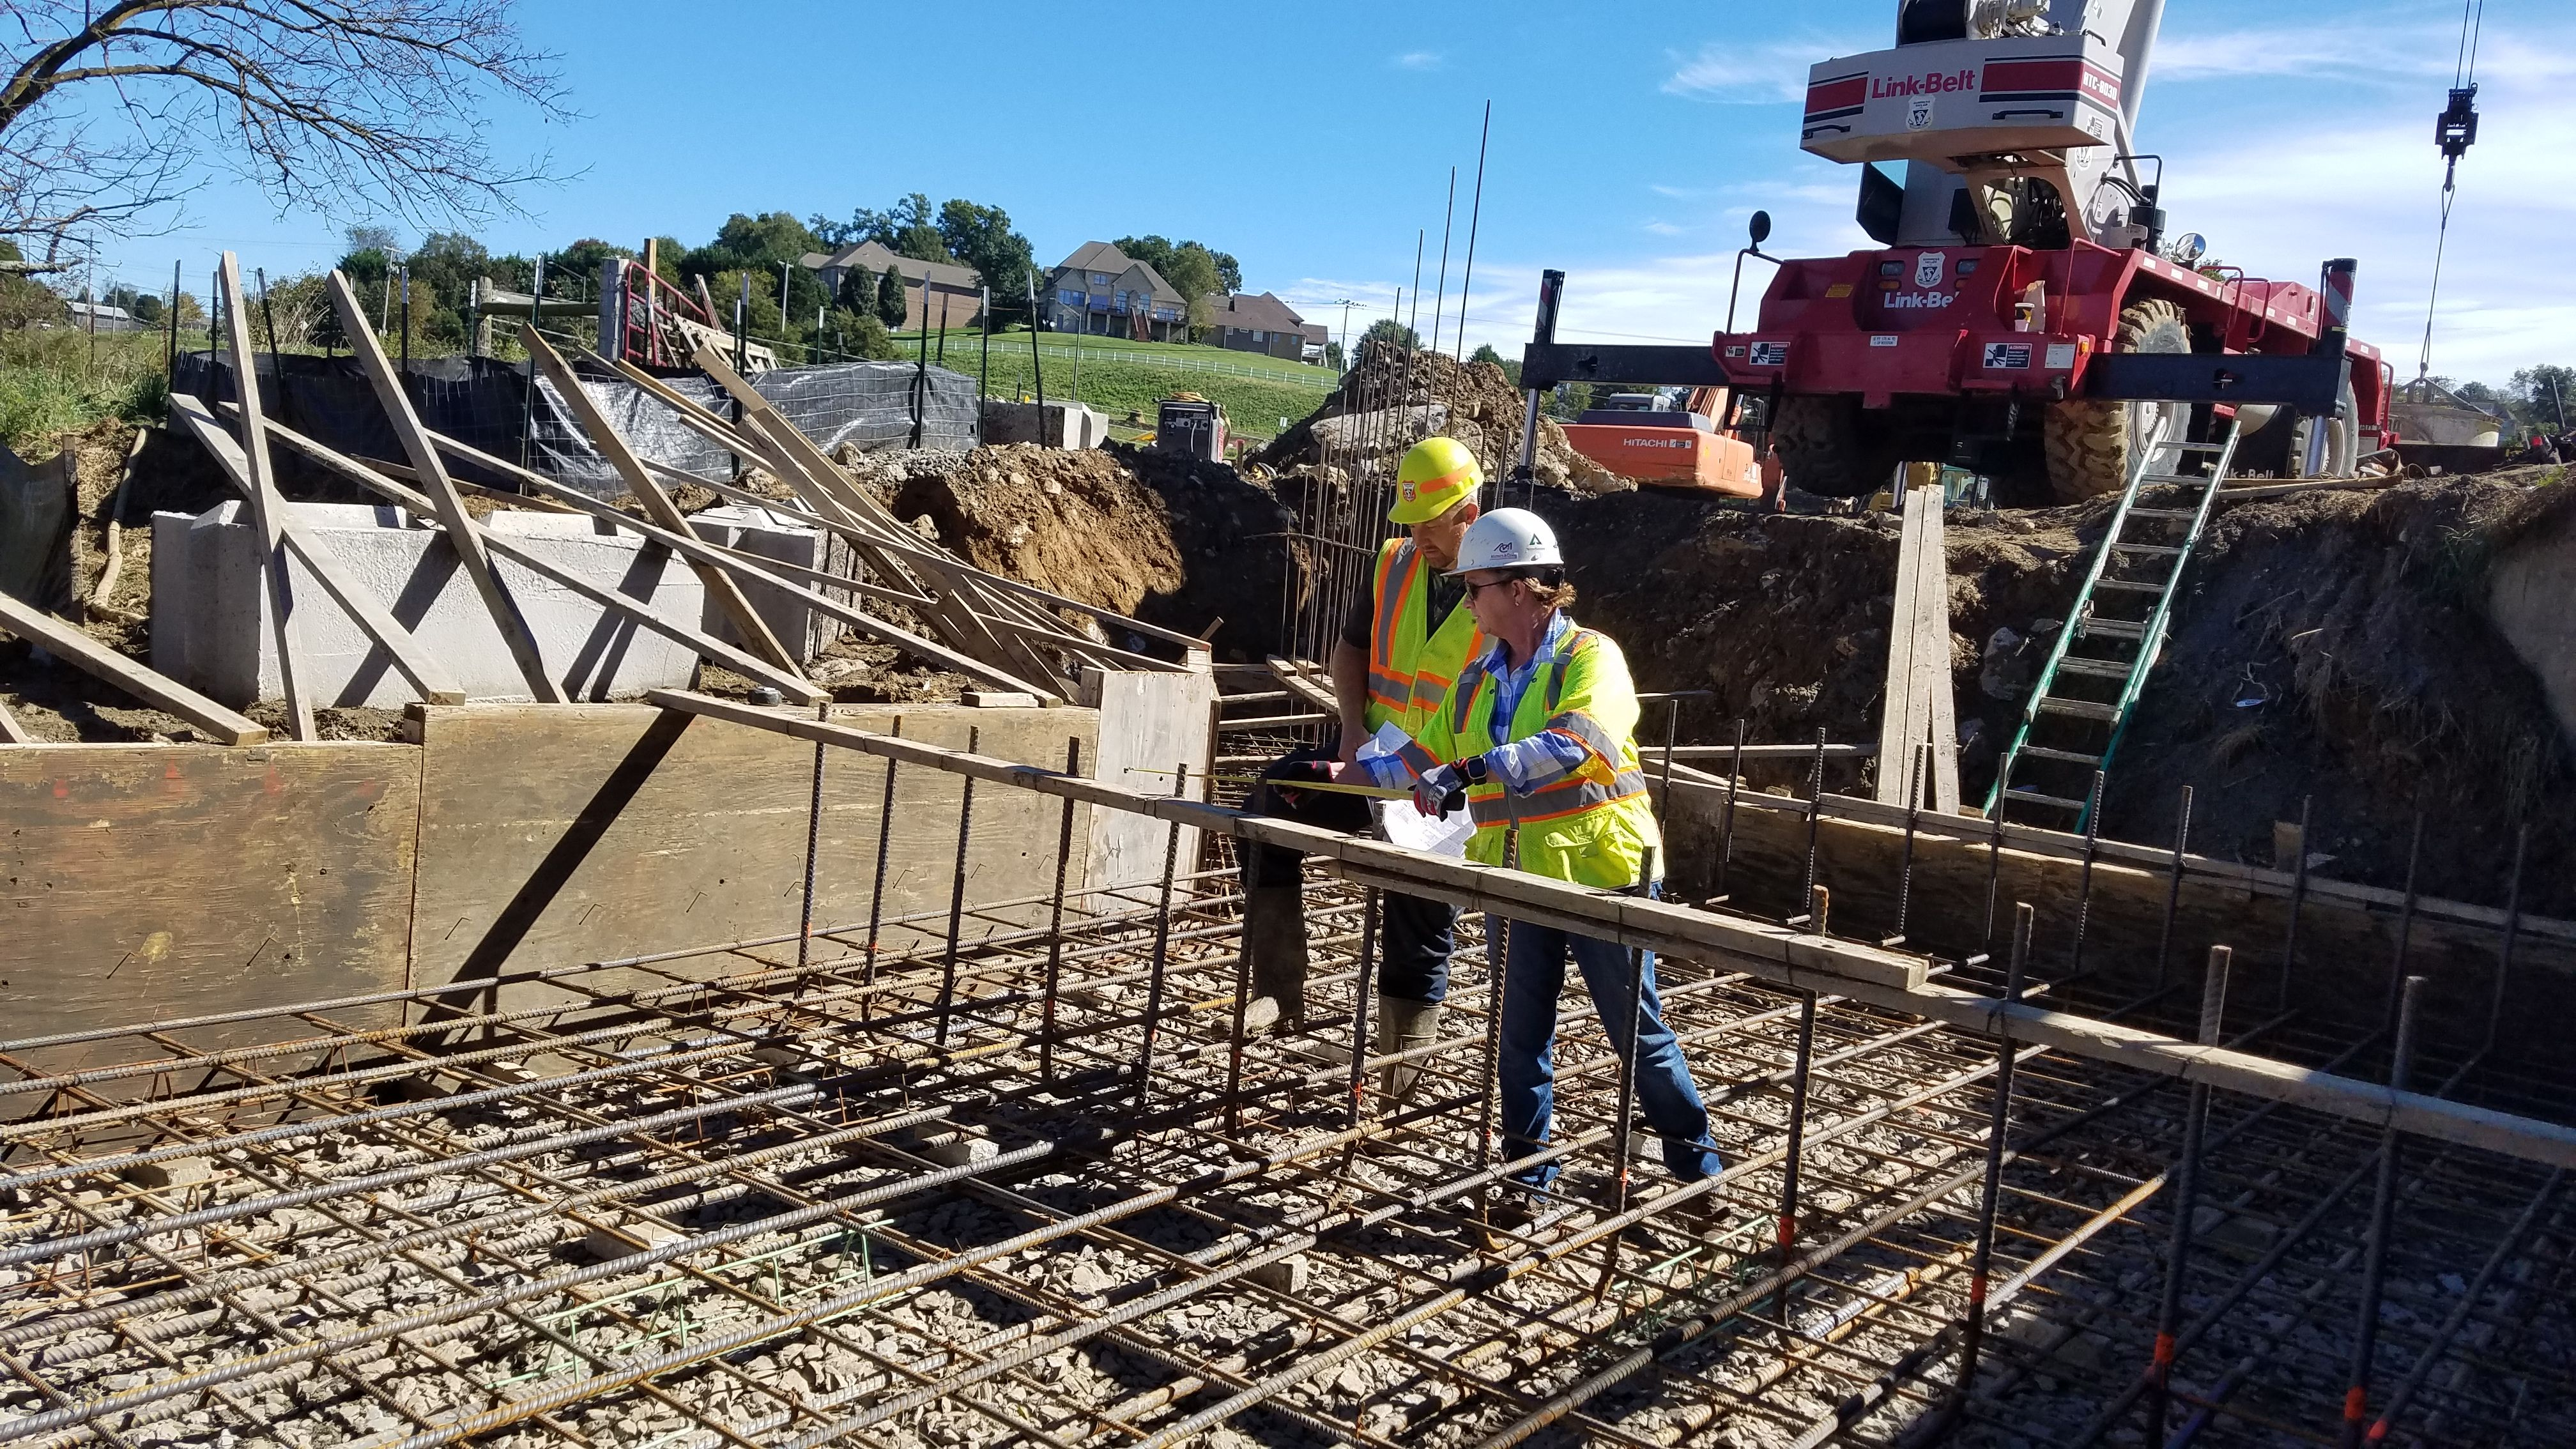 A Construction Engineering Construction Engineering Inspection Mattern Craig Engineers